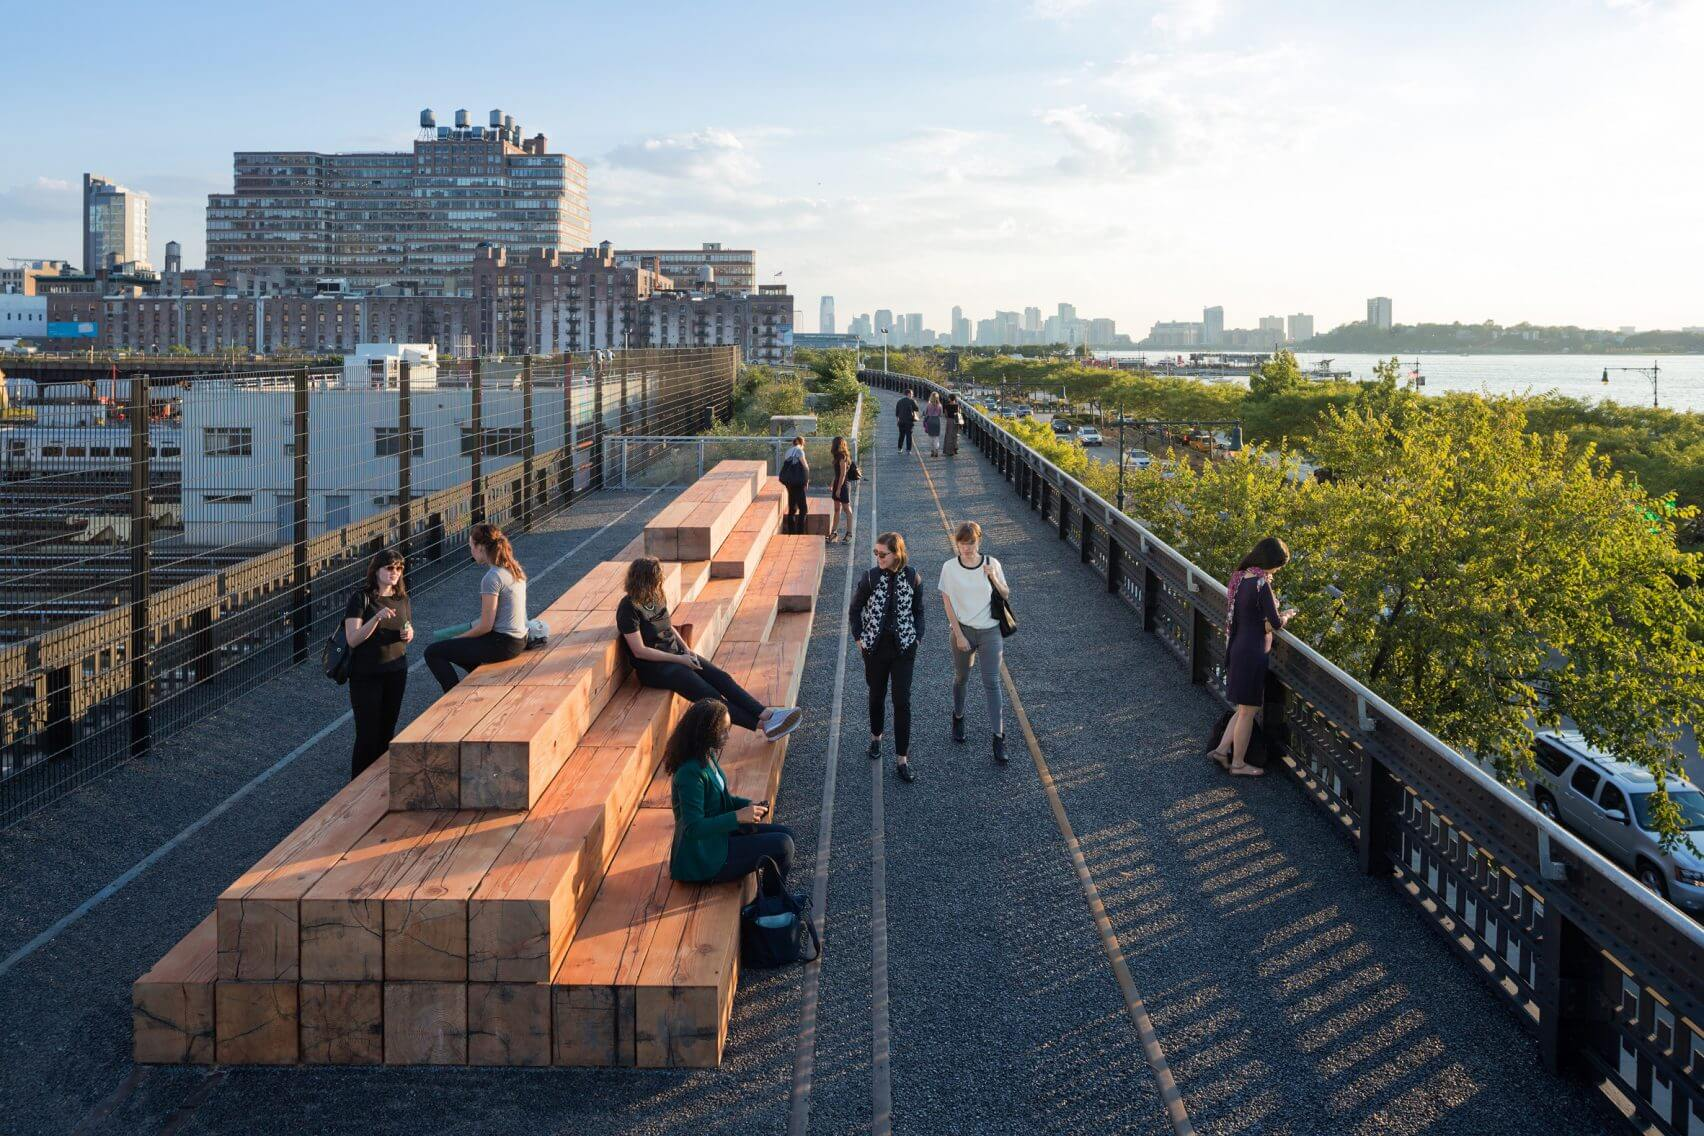 high-line-network-launches-platform-gentrificaiton-dezeen-col-a-1704x1136.jpg